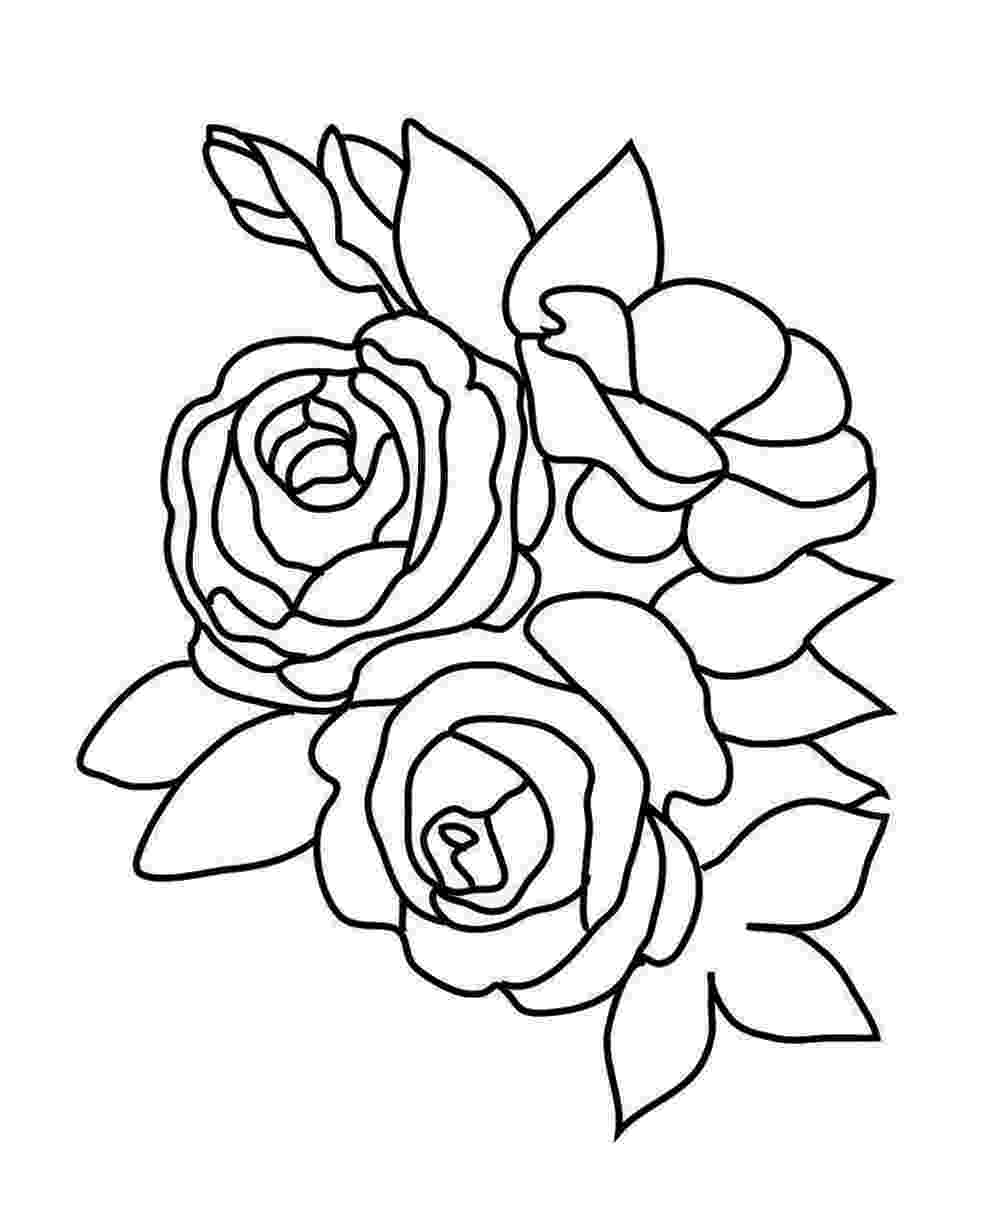 rose coloring sheets roses coloring pages getcoloringpagescom sheets rose coloring 1 1